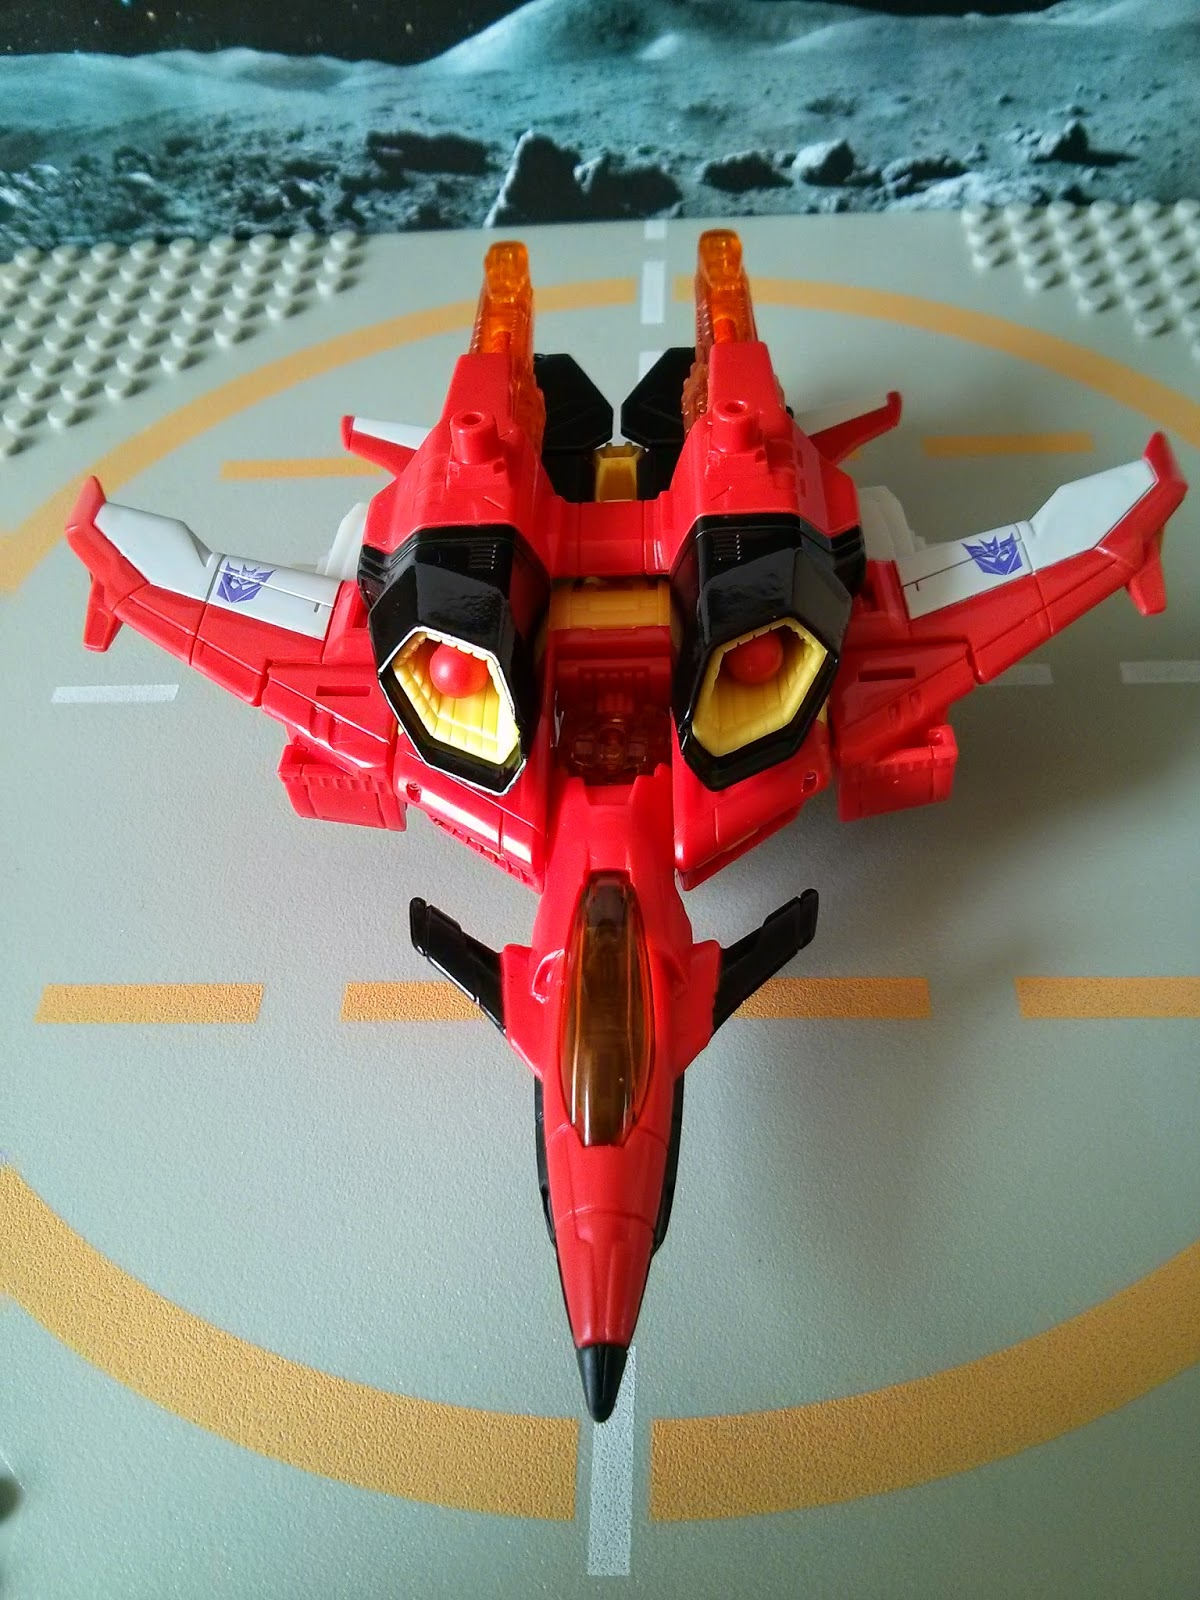 Starscreams jet mode from above